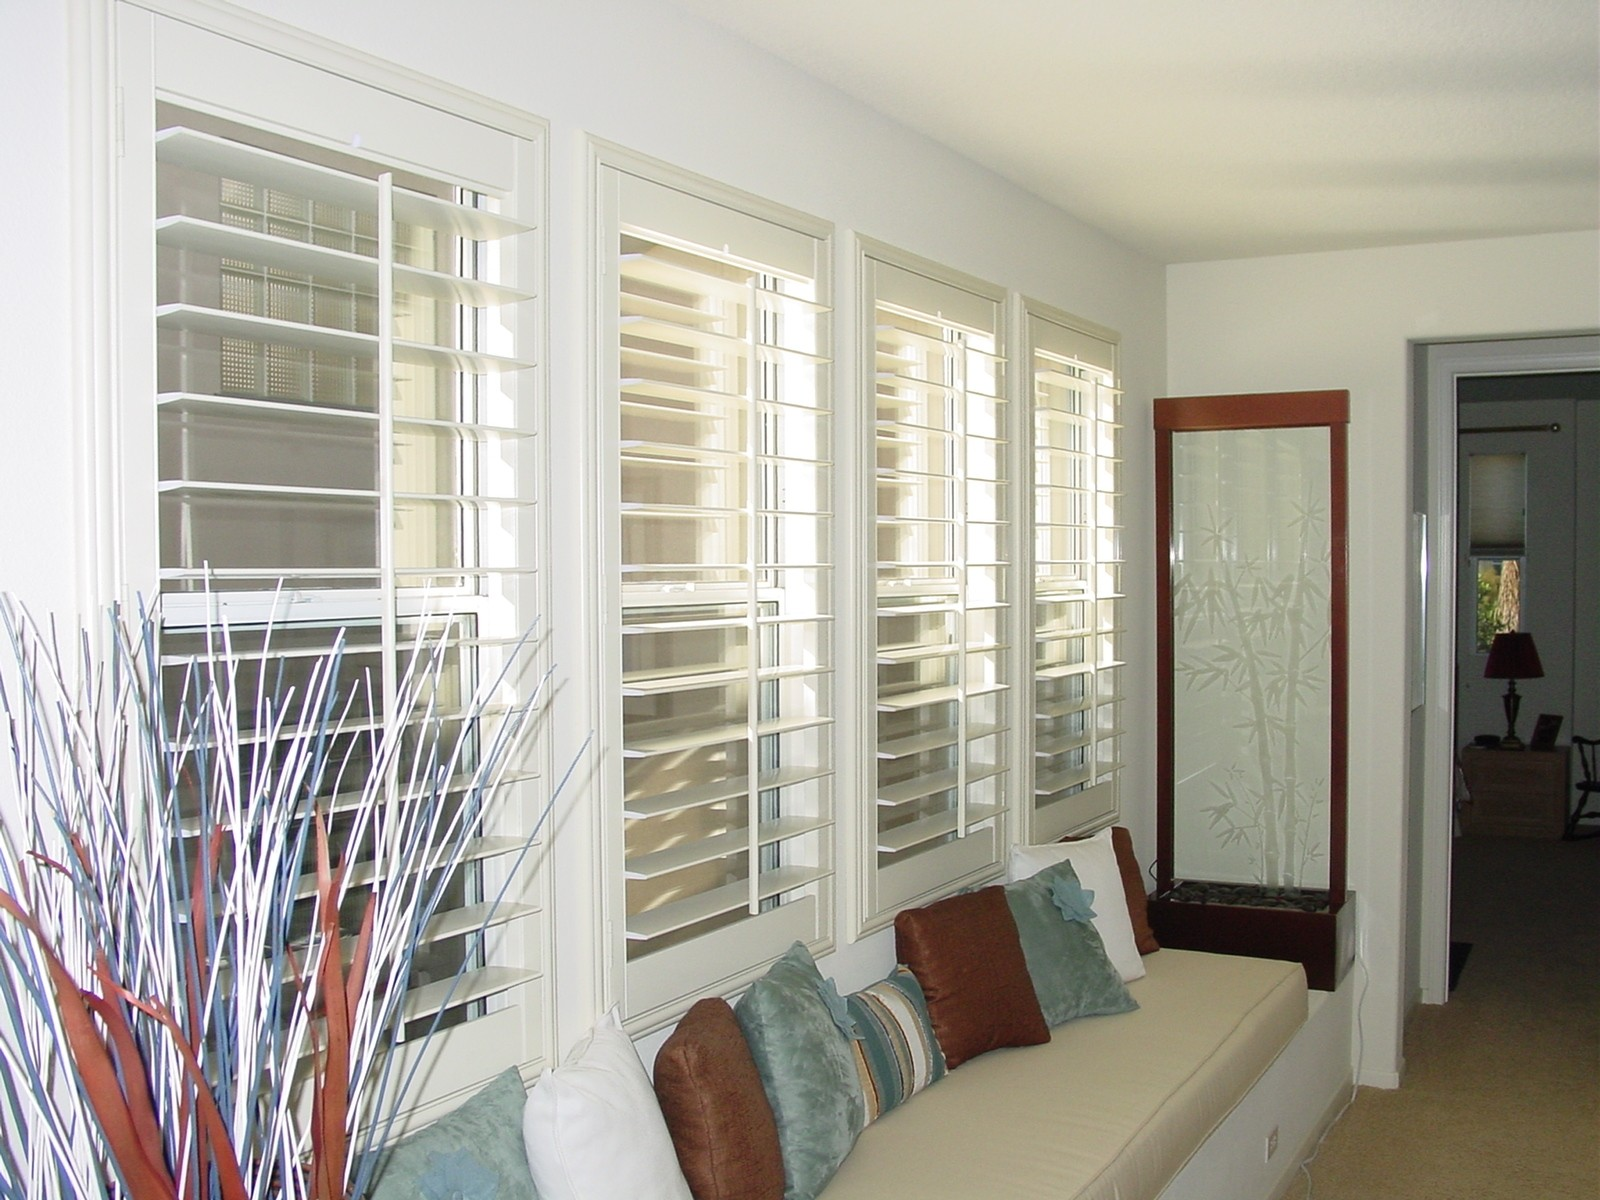 Interior Plantation Shutters Home Depot awesome vertical blinds for patio doors home depot 71 on interior decorating with vertical blinds for patio doors home depot Window Shutter In White Color A Long Bench Under The Windows With Light Cream Mattress And